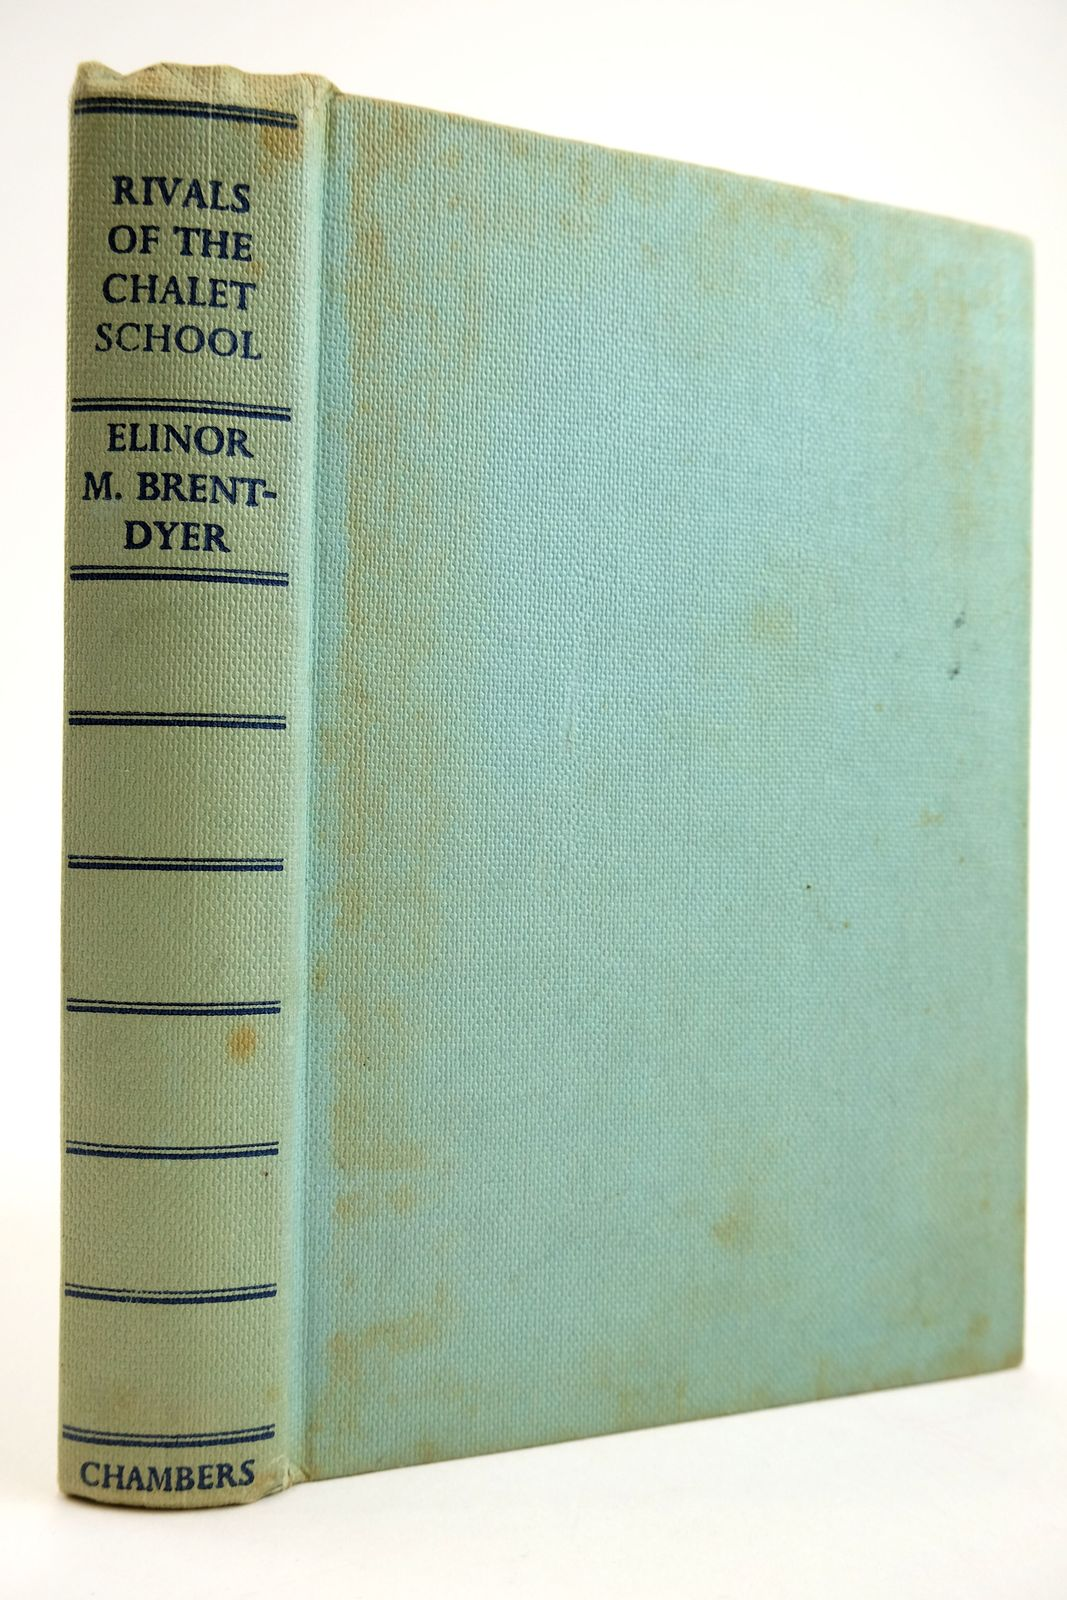 Photo of THE RIVALS OF THE CHALET SCHOOL written by Brent-Dyer, Elinor M. published by W. & R. Chambers Limited (STOCK CODE: 2133659)  for sale by Stella & Rose's Books